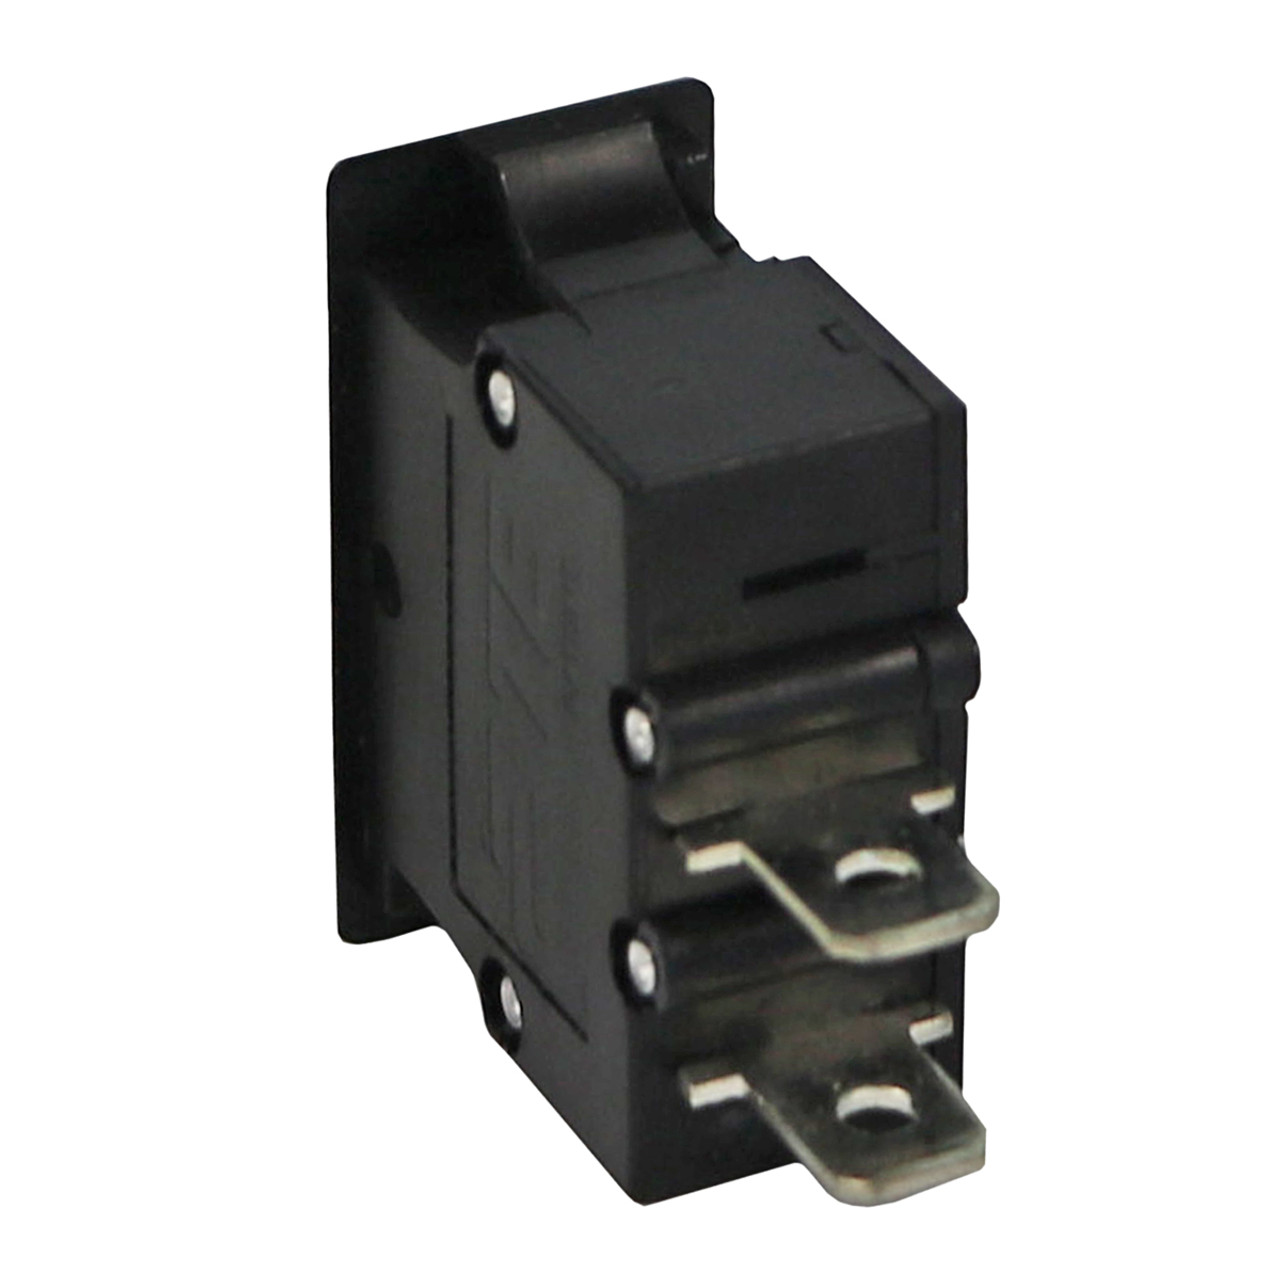 Dometic Atwood 32345 Hydro Flame Furnace Circuit Breaker